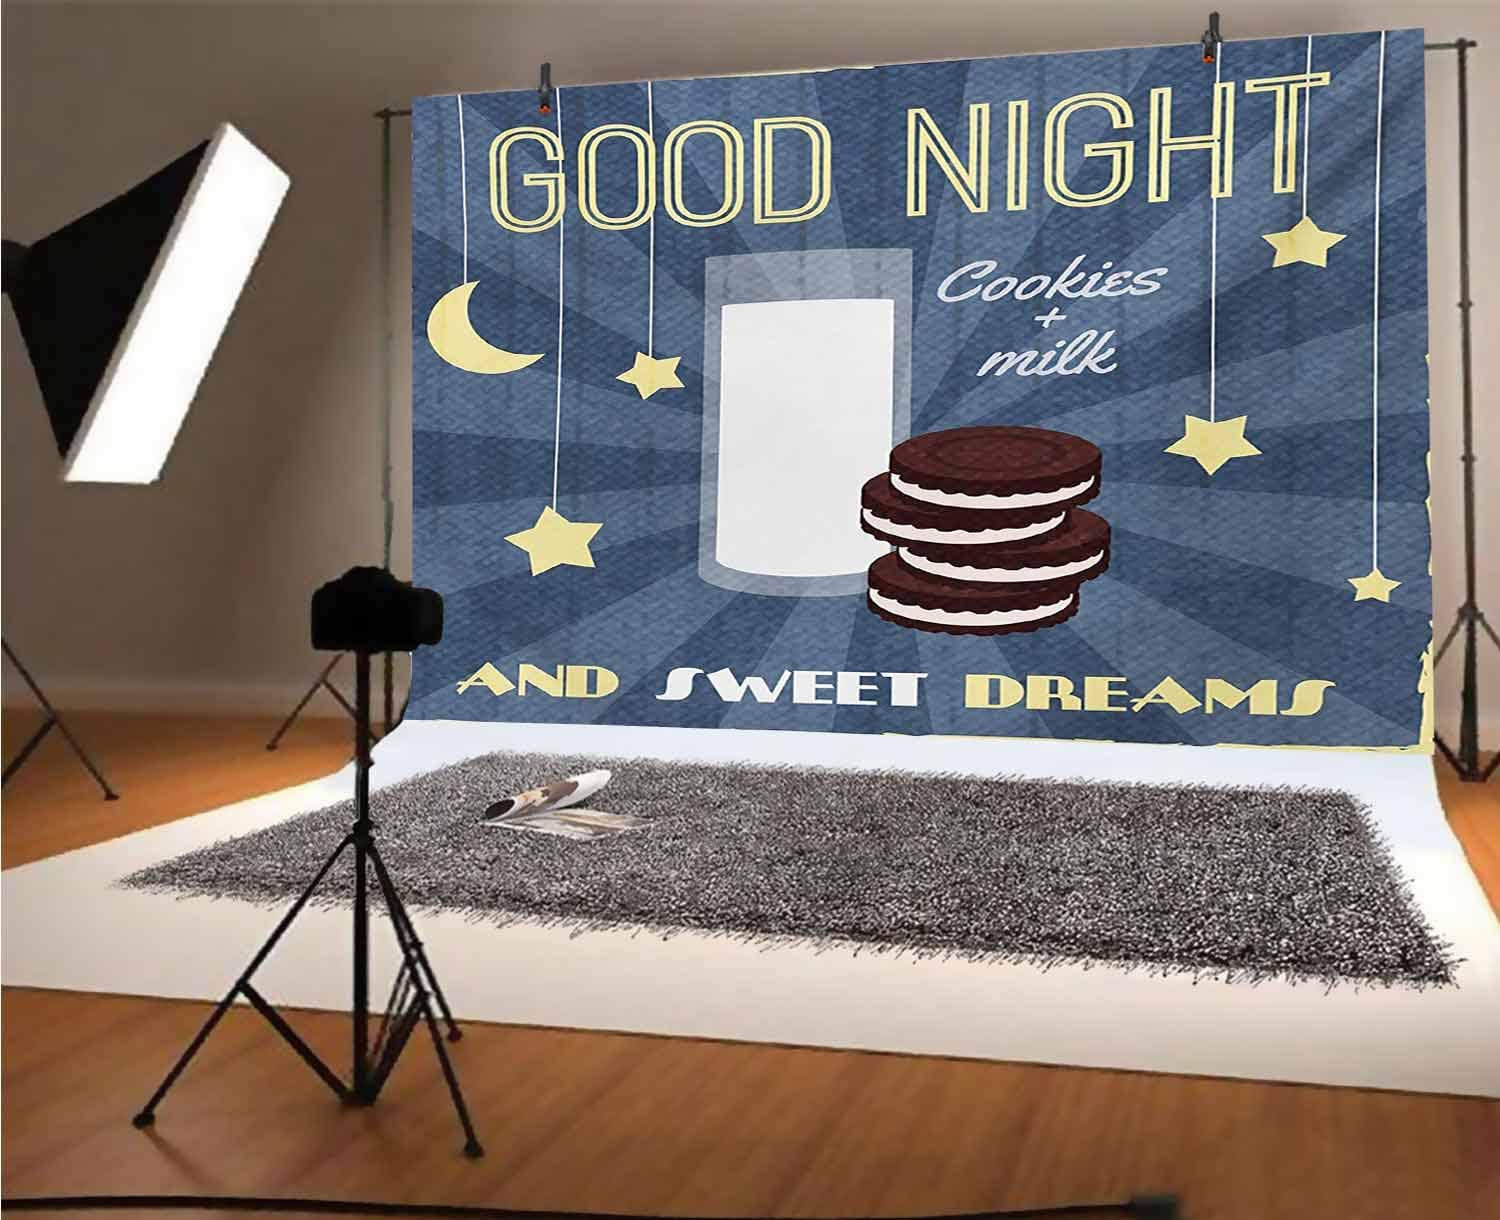 Gothic 8x6 FT Vinyl Photography Background Backdrops,Medieval Castle at Night with Old Arch and Candles Middle Age Misty Image Background for Photo Backdrop Studio Props Photo Backdrop Wall